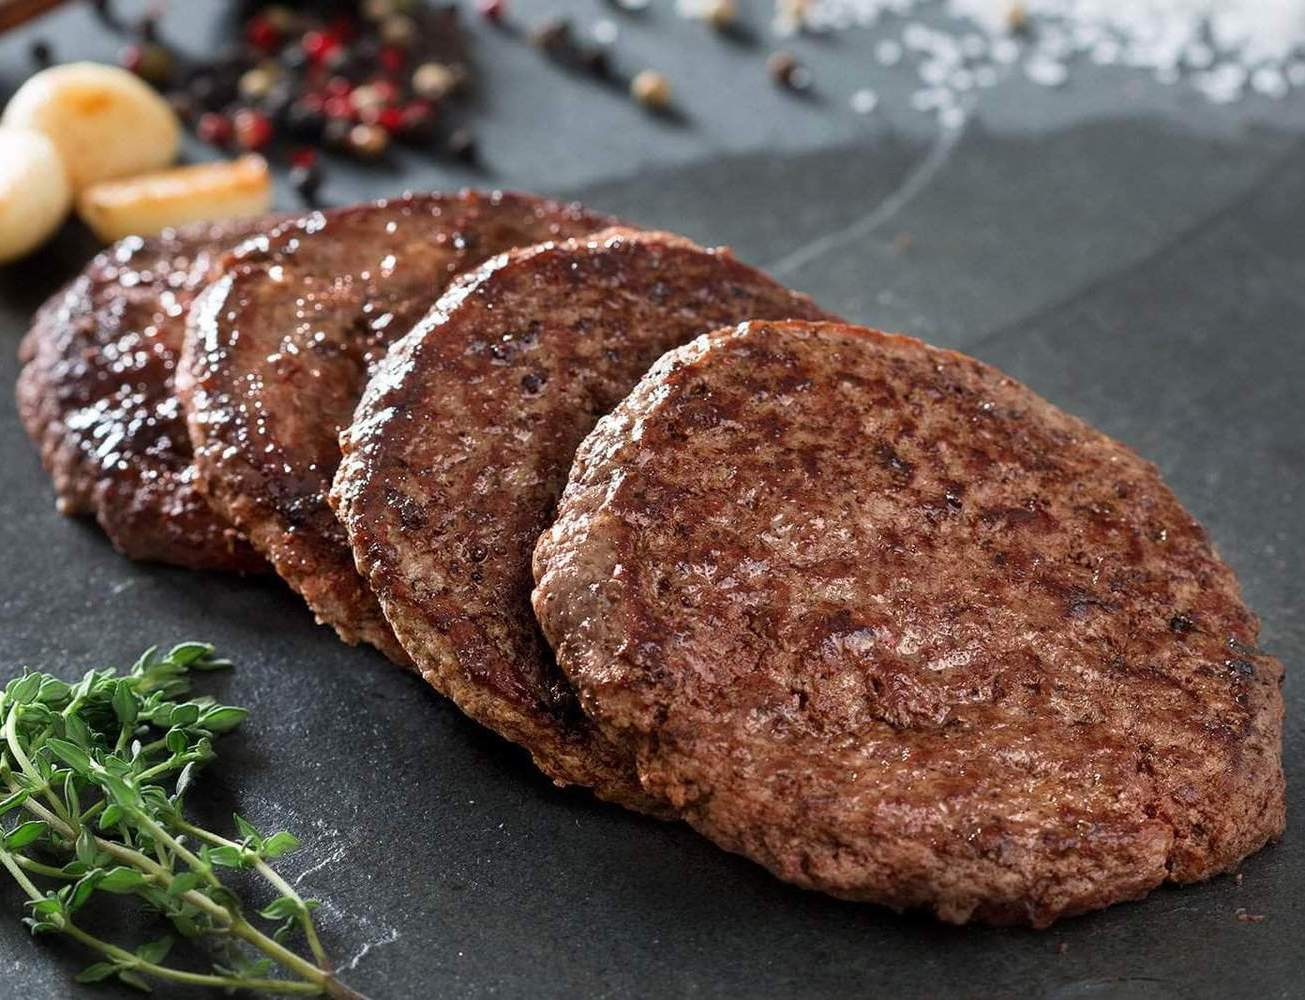 Greensbury Product Beef Patties Cooked 1600x1067 feb950a4 0f37 4e49 9d01 Asda Now Selling Donut-Shaped Beef Burgers, Because Why Not